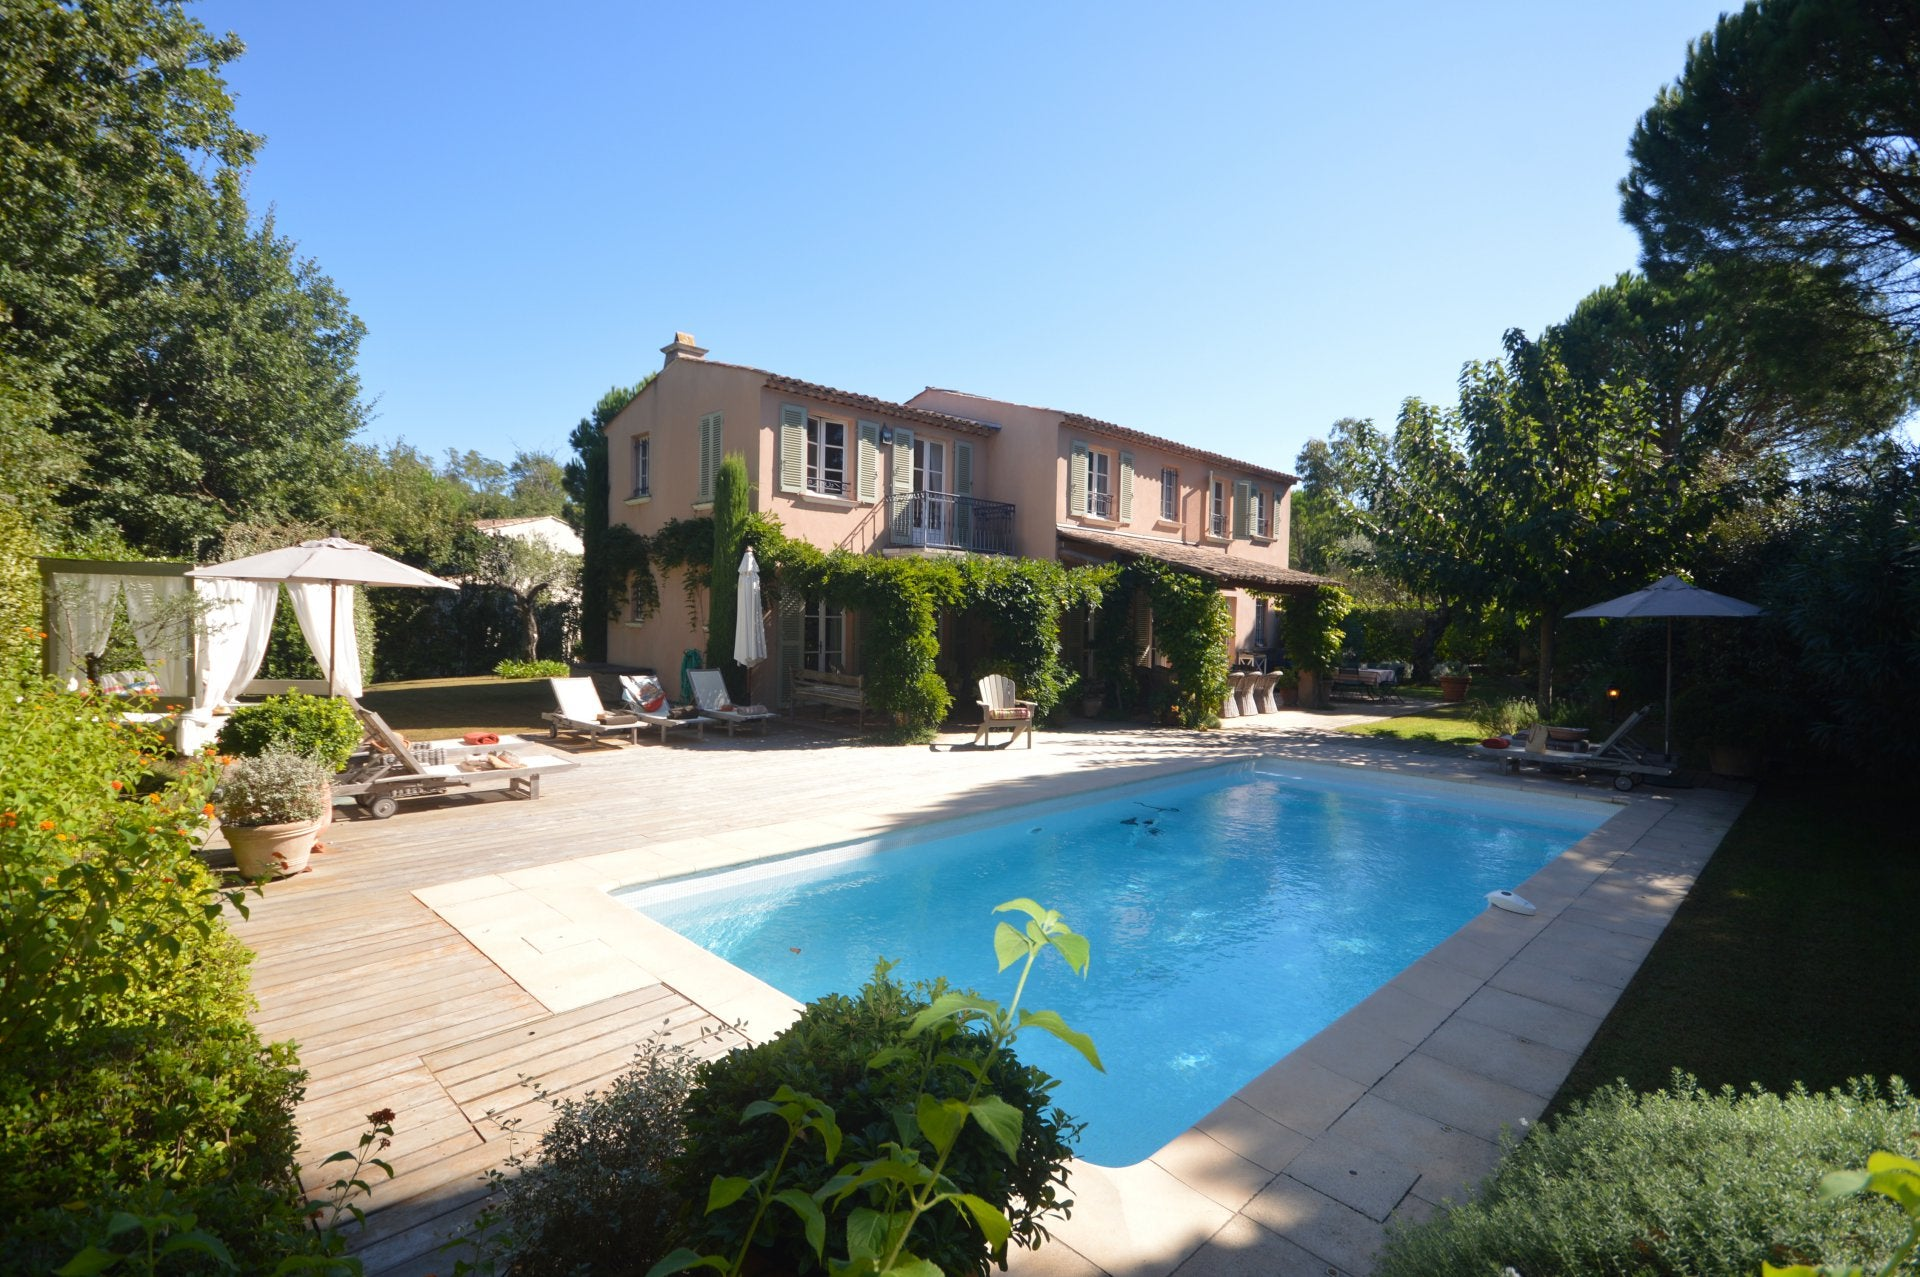 SAINT TROPEZ-CENTER-2413714-EN - Agence St Tropez